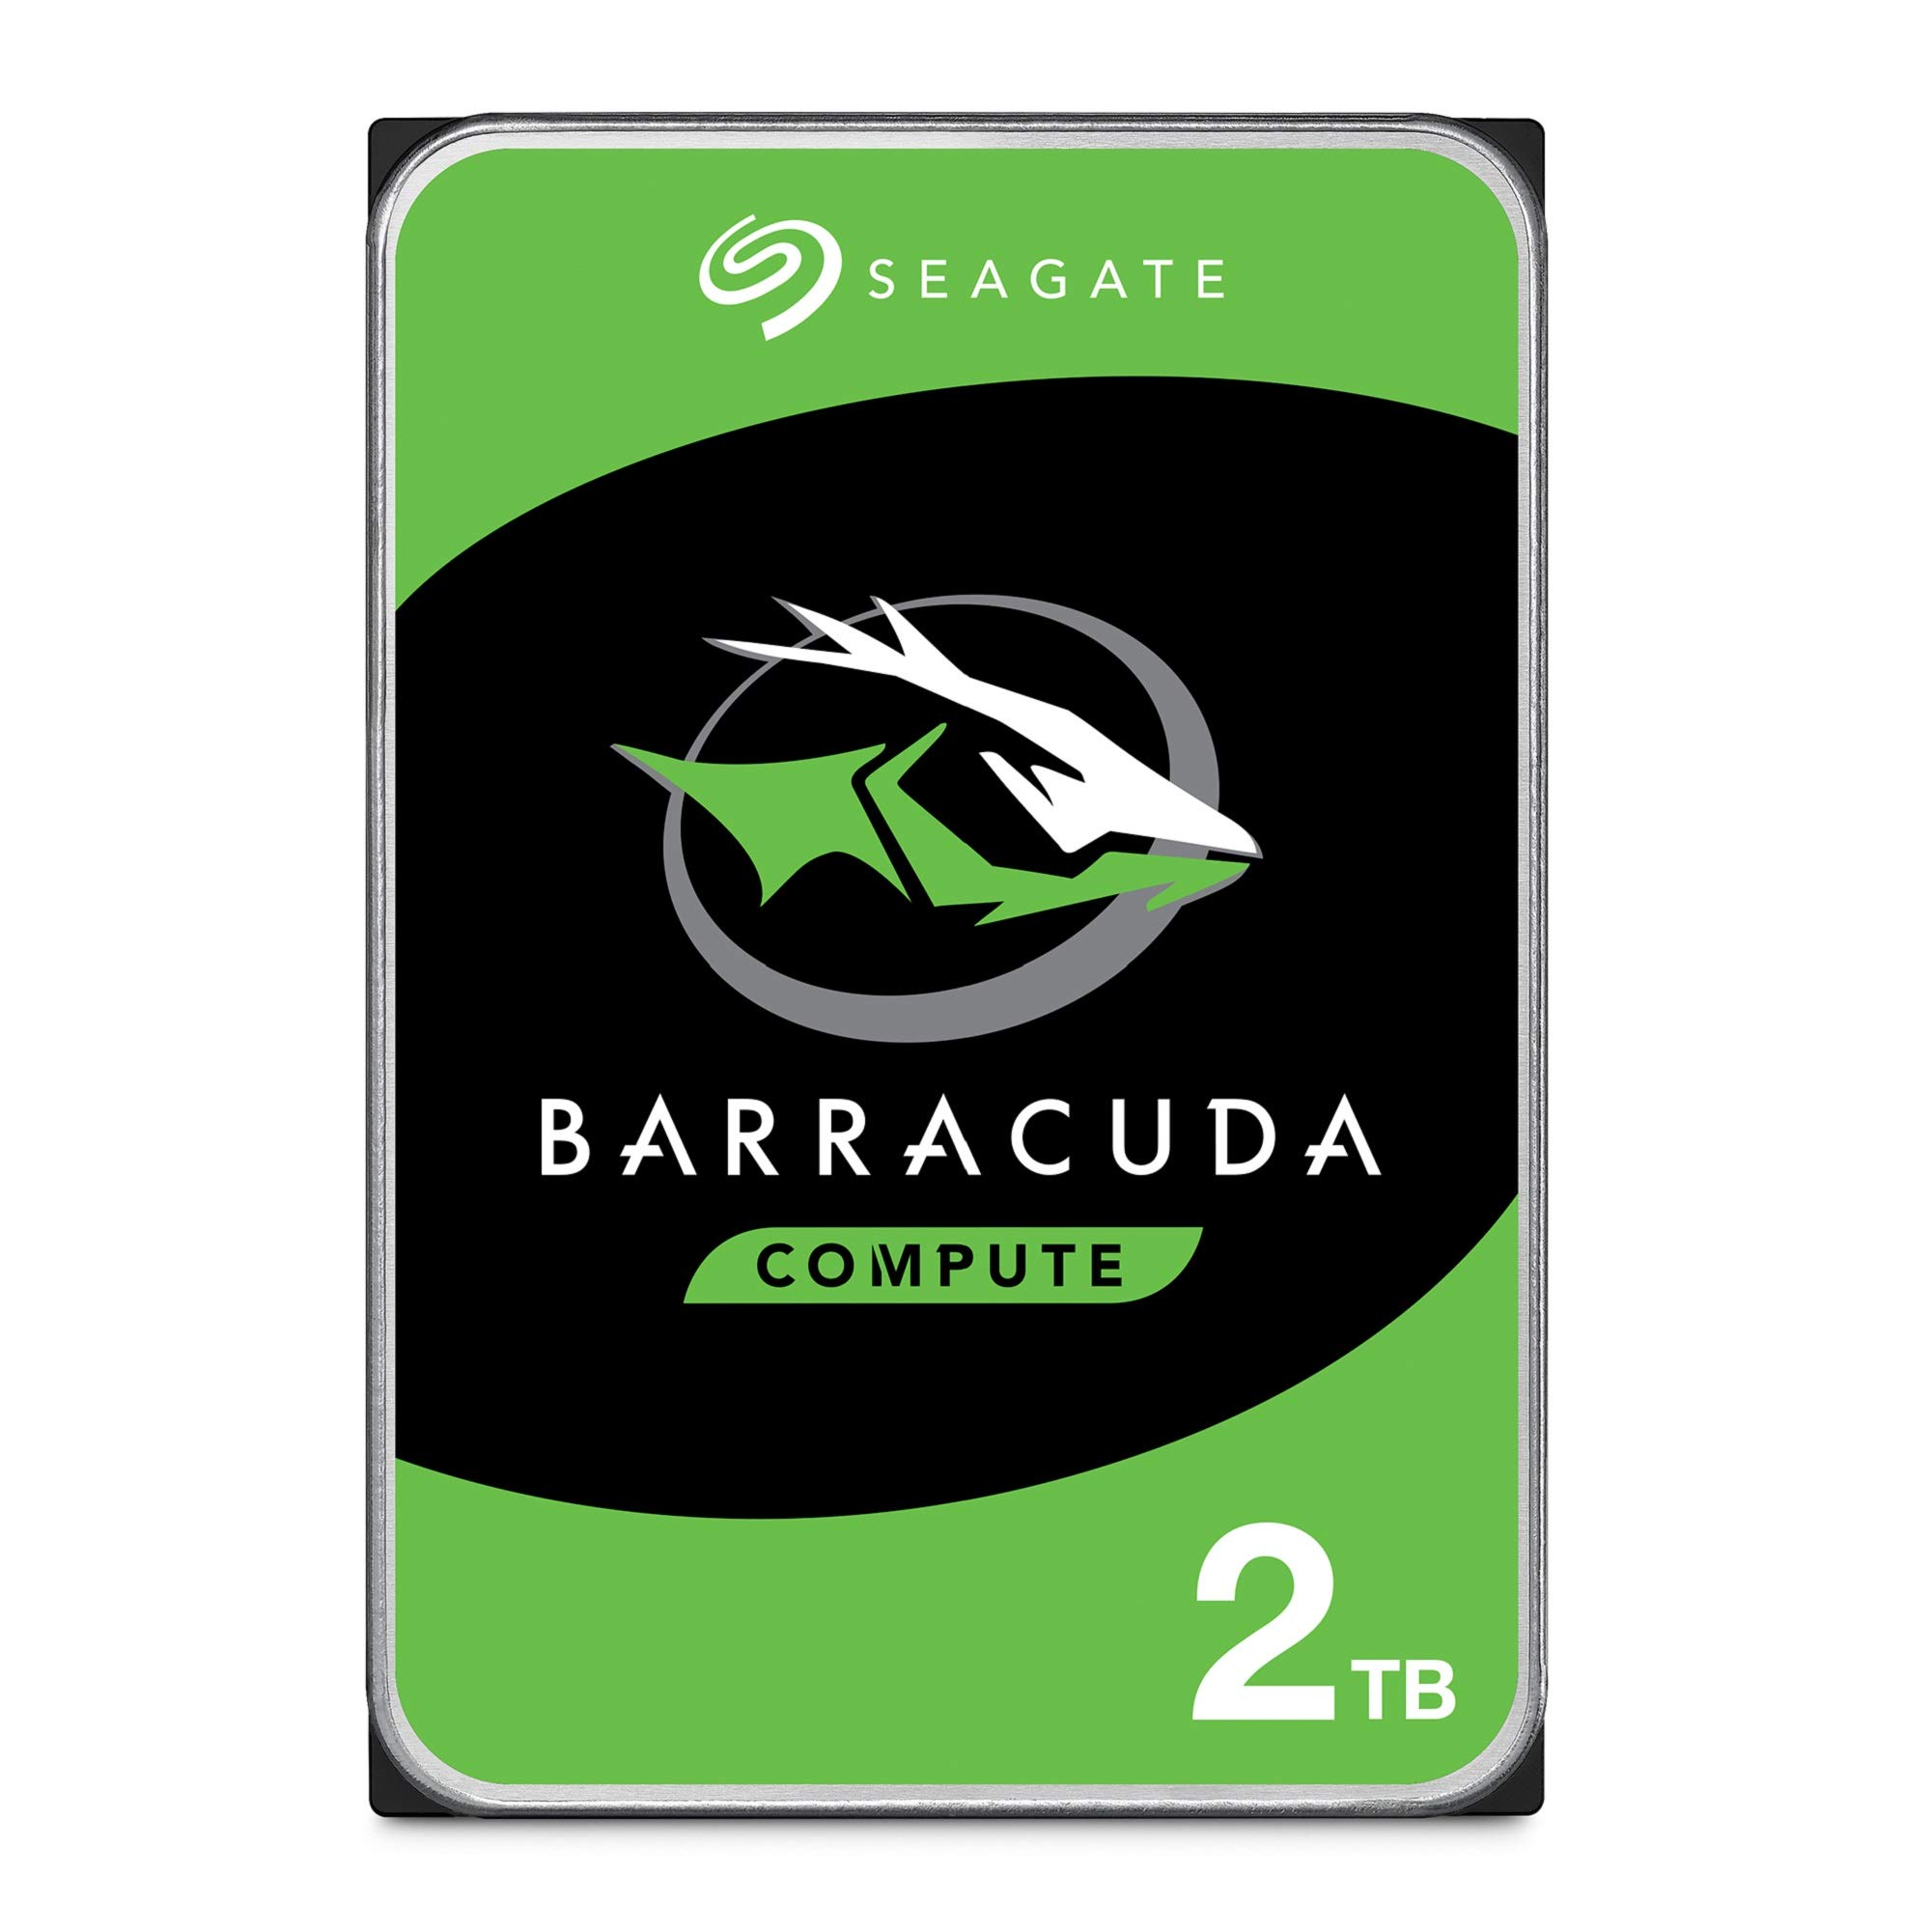 Seagate BarraCuda 2TB Internal Hard Drive HDD - 3.5 Inch SATA 6Gb/s 7200 RPM 256MB Cache 3.5-Inch - Frustration Free Packaging (ST2000DM008) by Seagate